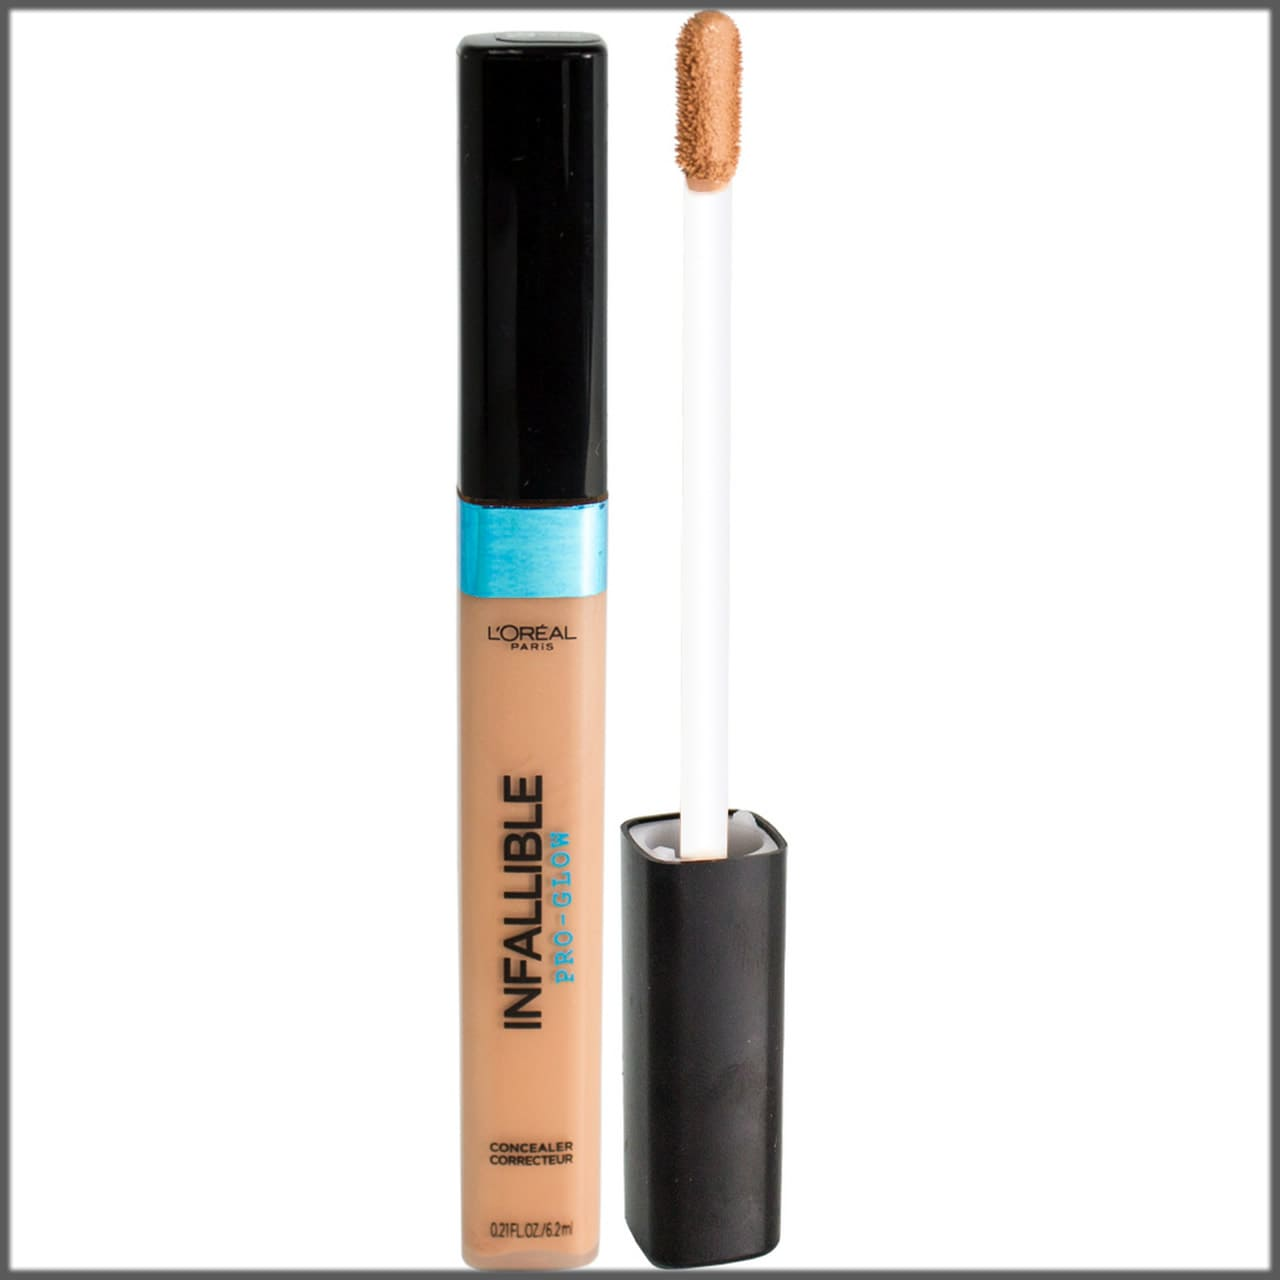 Loreal best concealer for oily skin